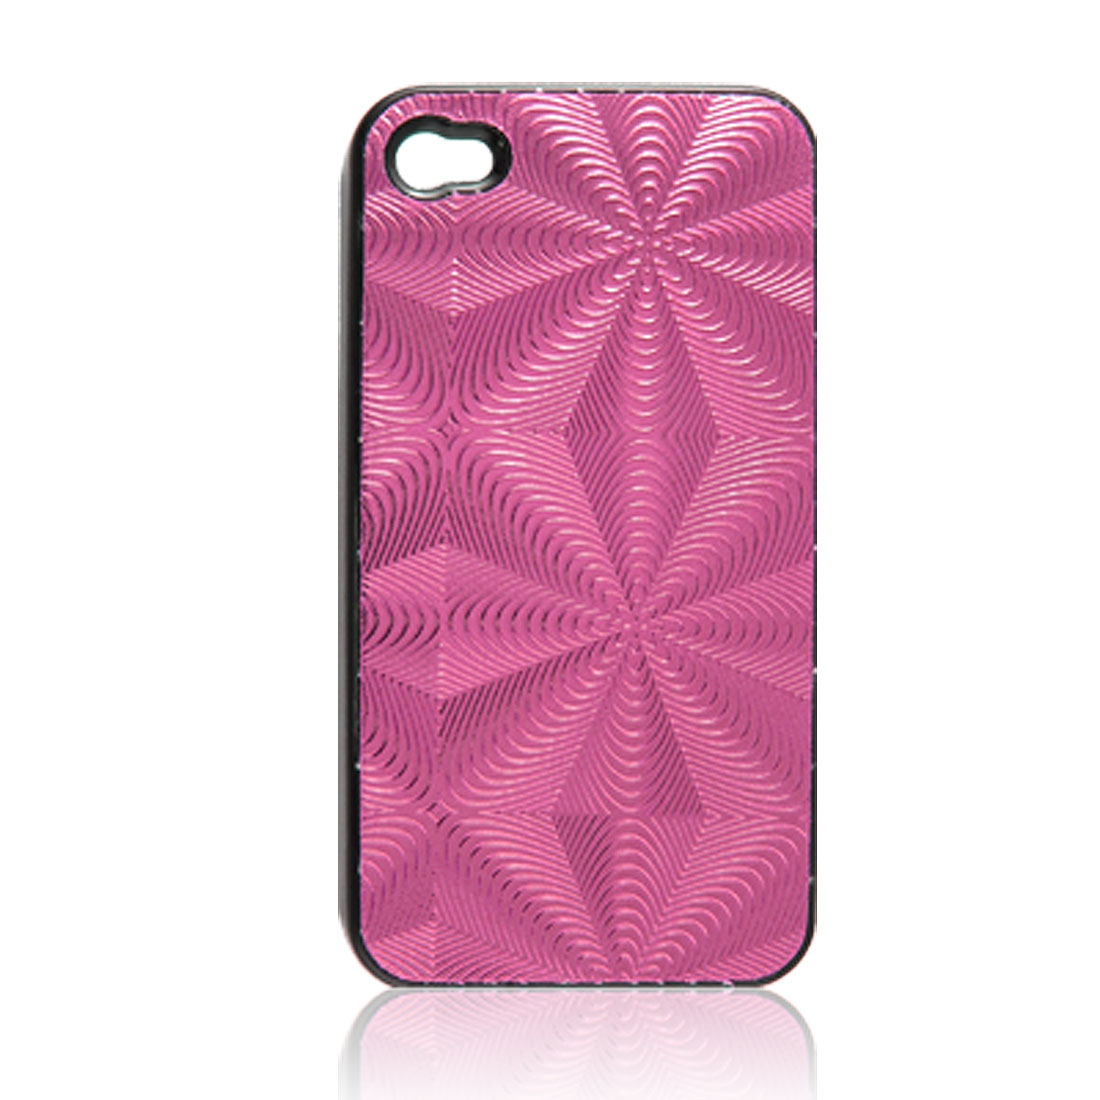 Amaranth Ripple Shiny Plastic Back Case for iPhone 4 4G